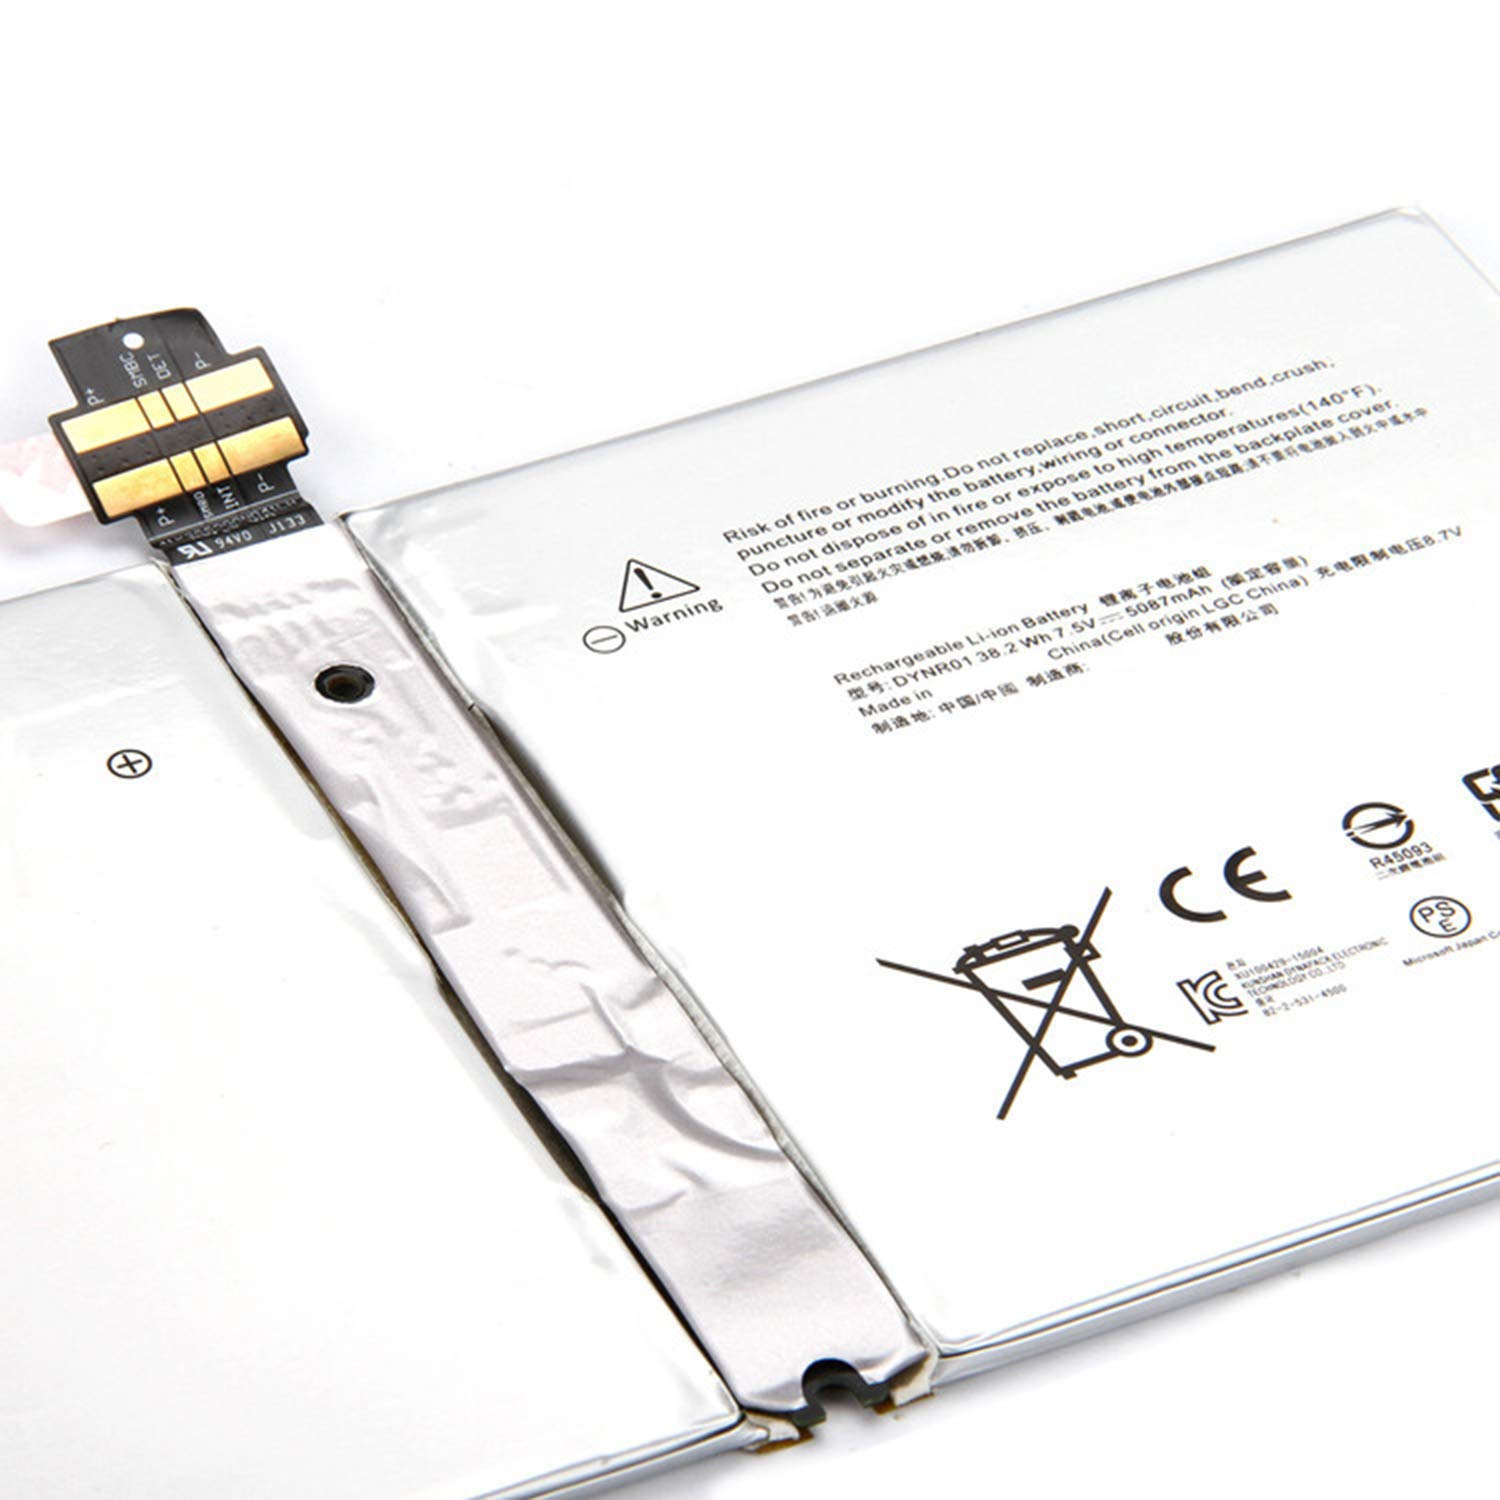 JIAZIJIA G3HTA027H Replacement Tablet Laptop Battery for Microsoft Surface Pro 4 1724 12.3 inch Series Notebook Tablet DYNR01 Tools White 7.5V 38.2Wh 5087mAh